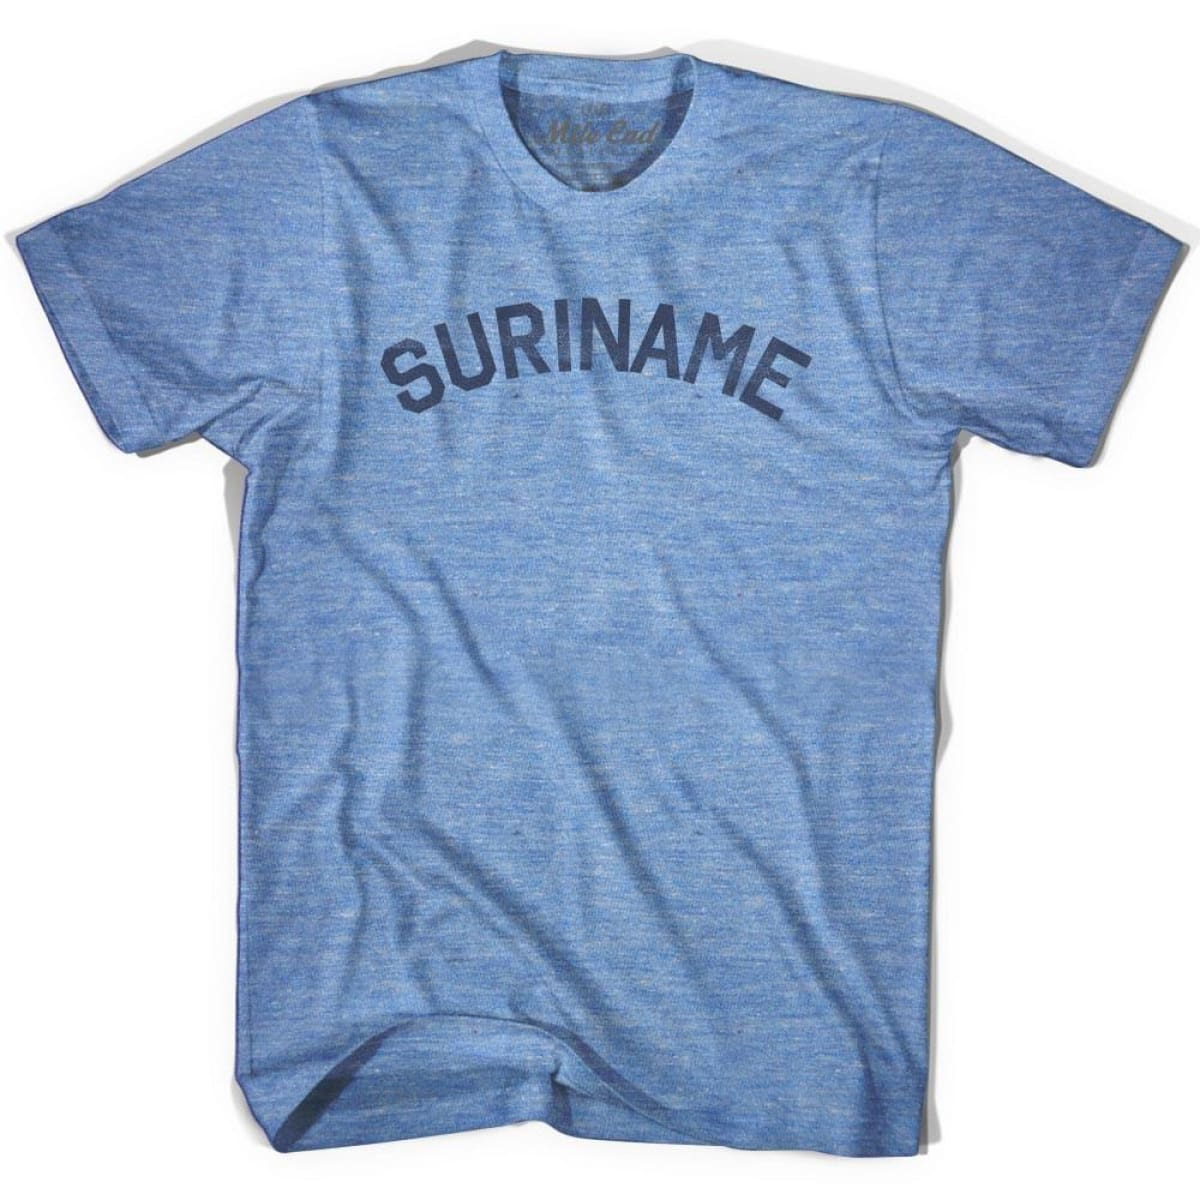 Suriname City Vintage T-shirt - Athletic Blue / Adult X-Small - Mile End City